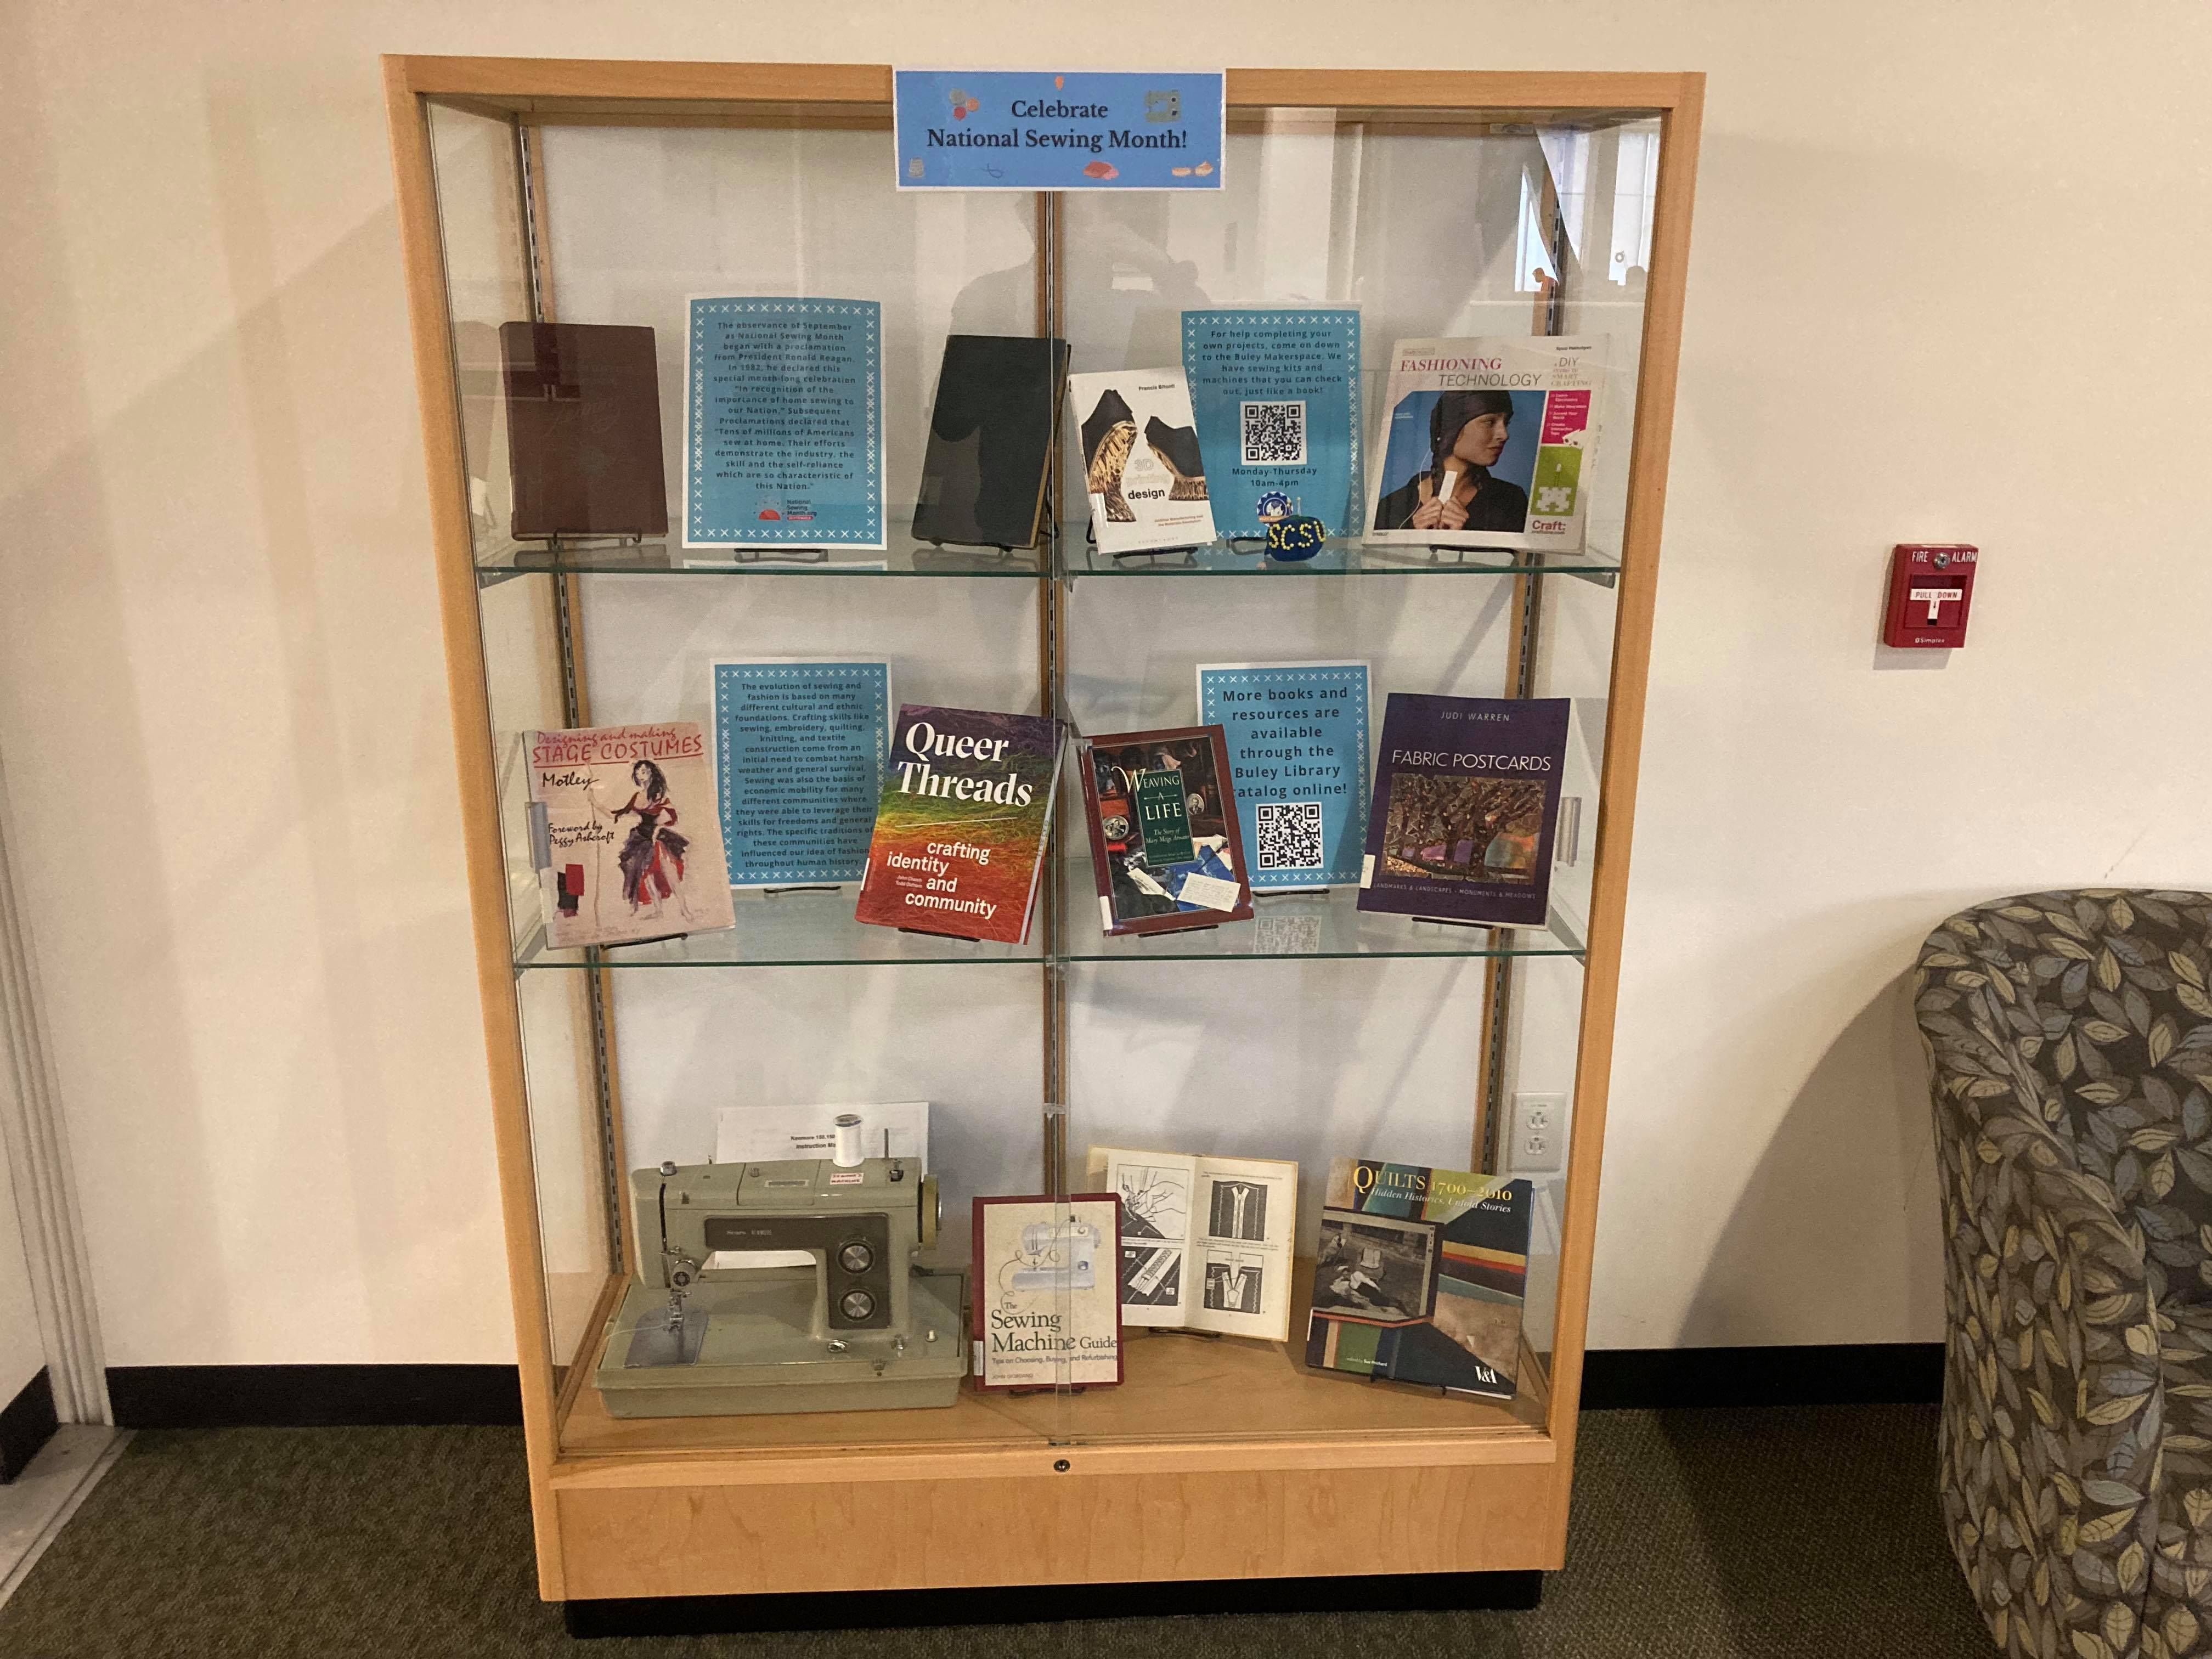 Entire exhibit case with books on sewing and fashion and a vintage sewing machine